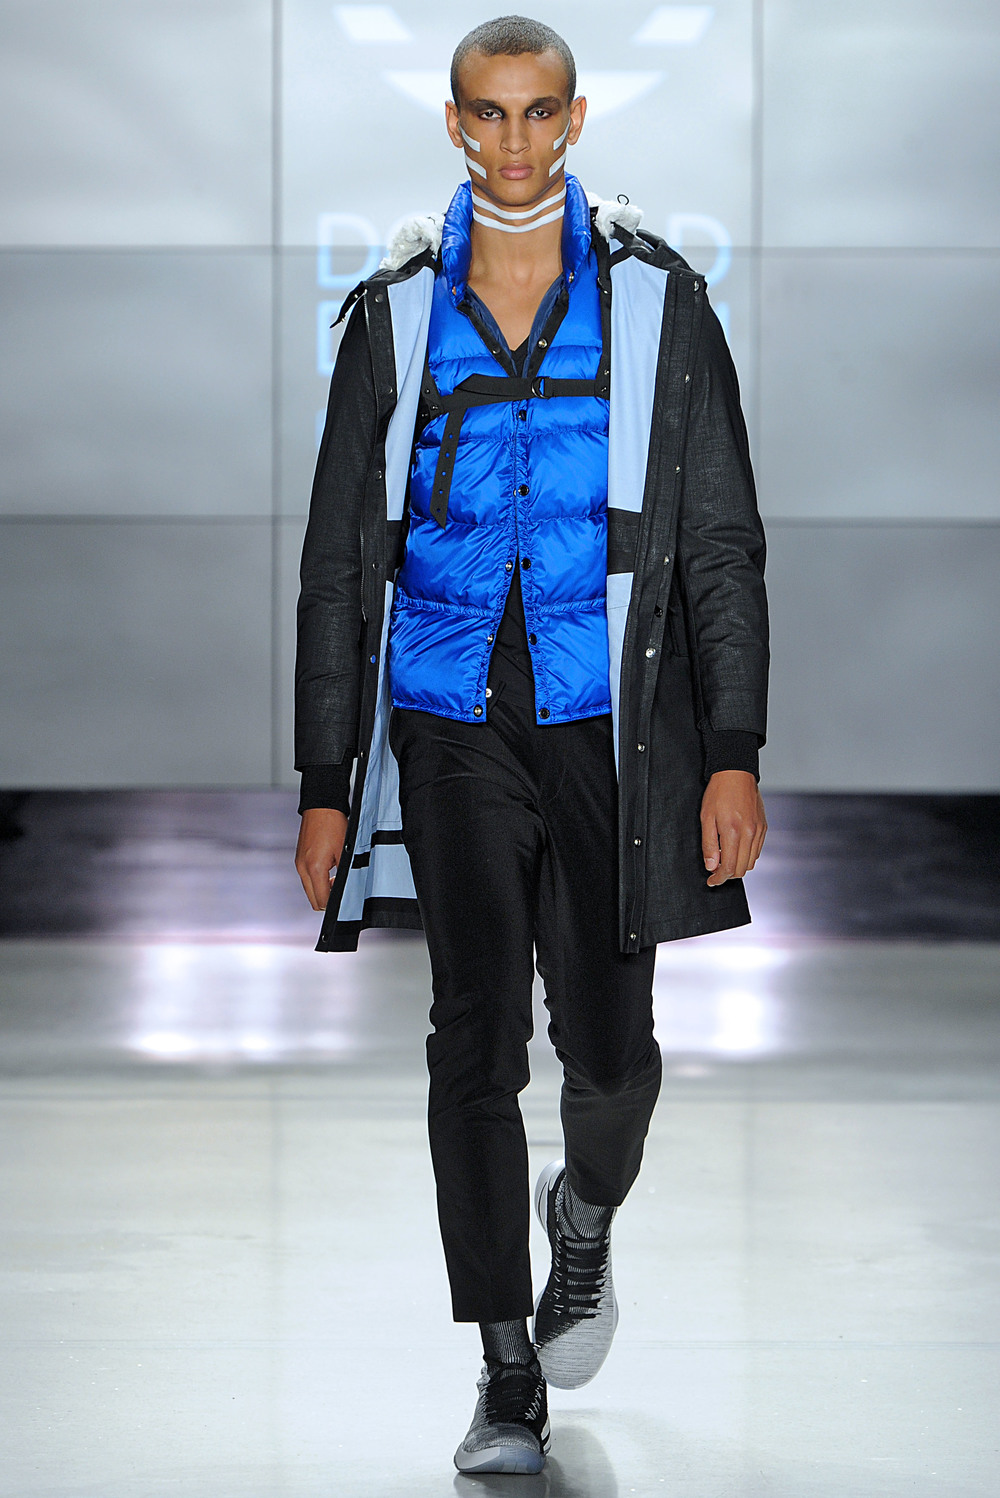 NYFWM: EFM Engineered For Motion Autumn/Winter 2017 Runway Show